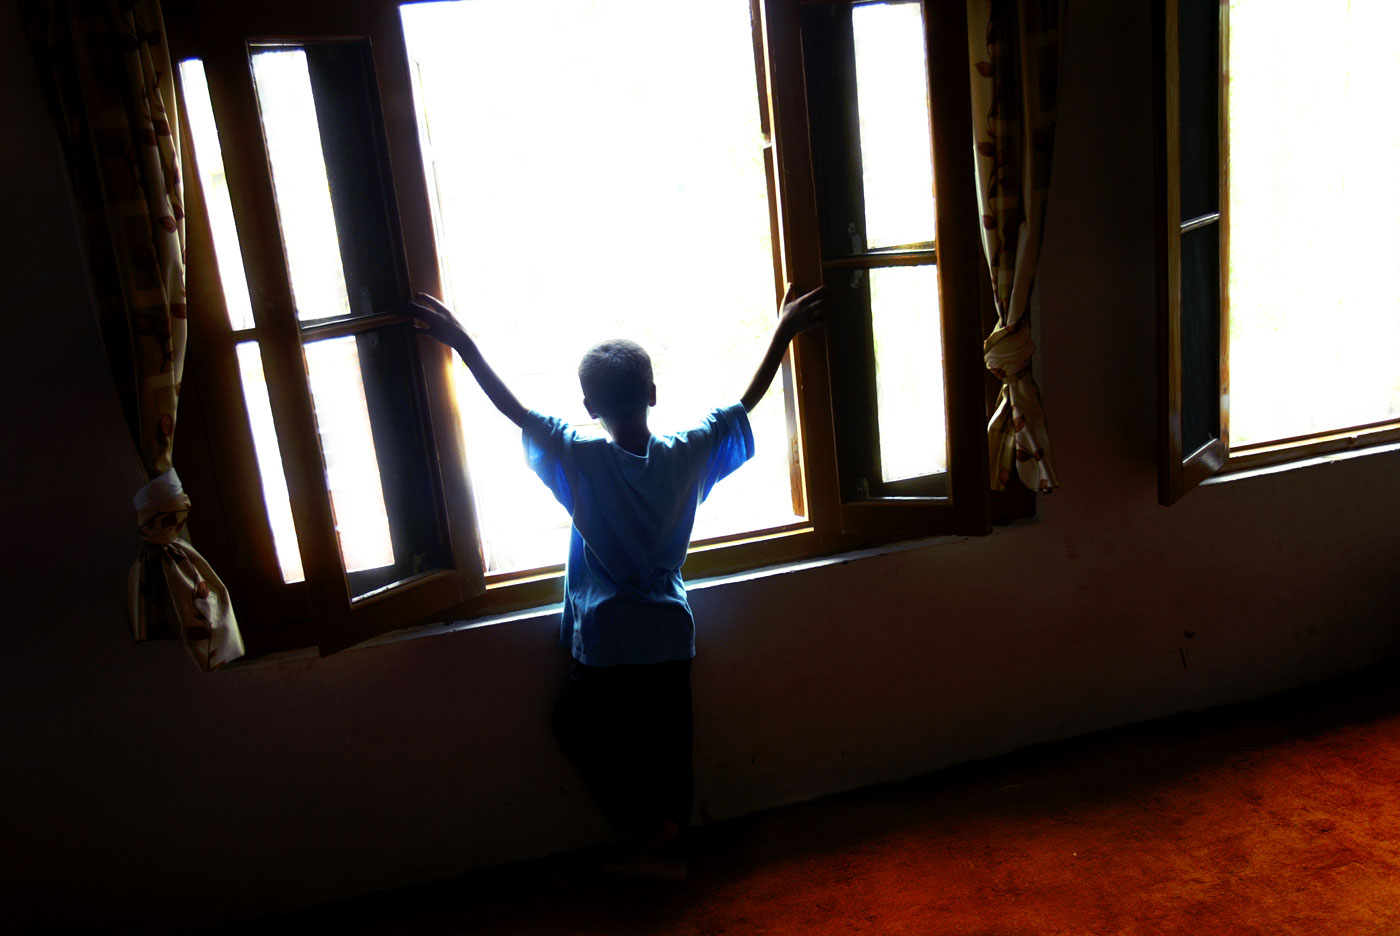 Imtiyaz Ahmad looks out the window from his bedroom. He, like so many other orphans, face an uncertain future.